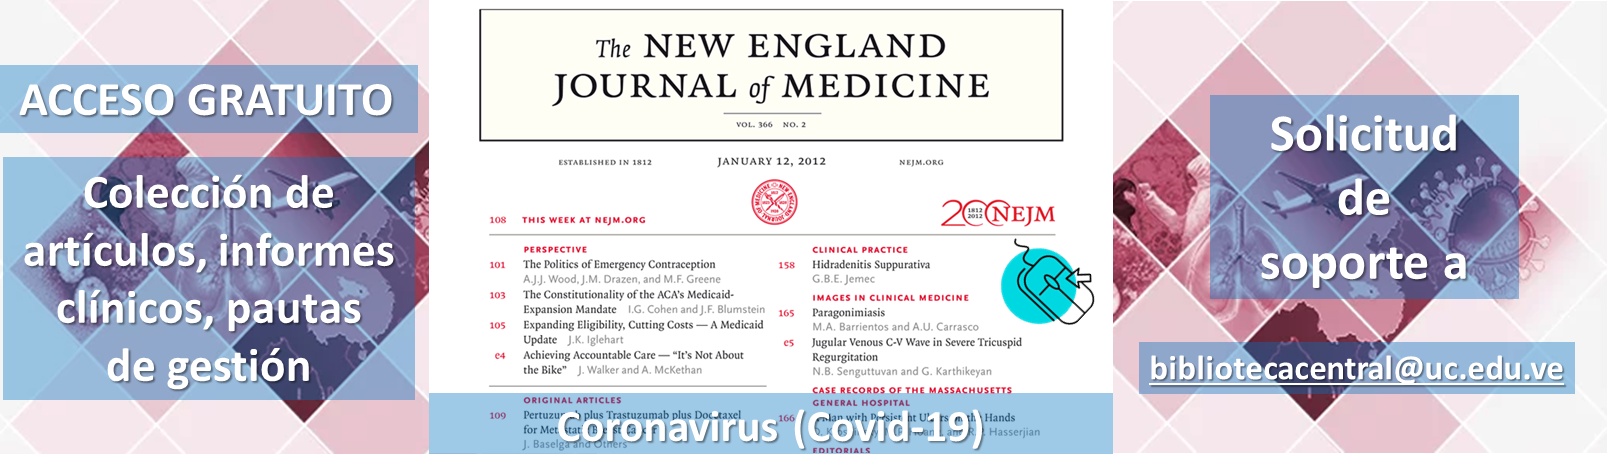 Coronavirus (Covid-19). The New England Journal of Medicine (@NEJM)